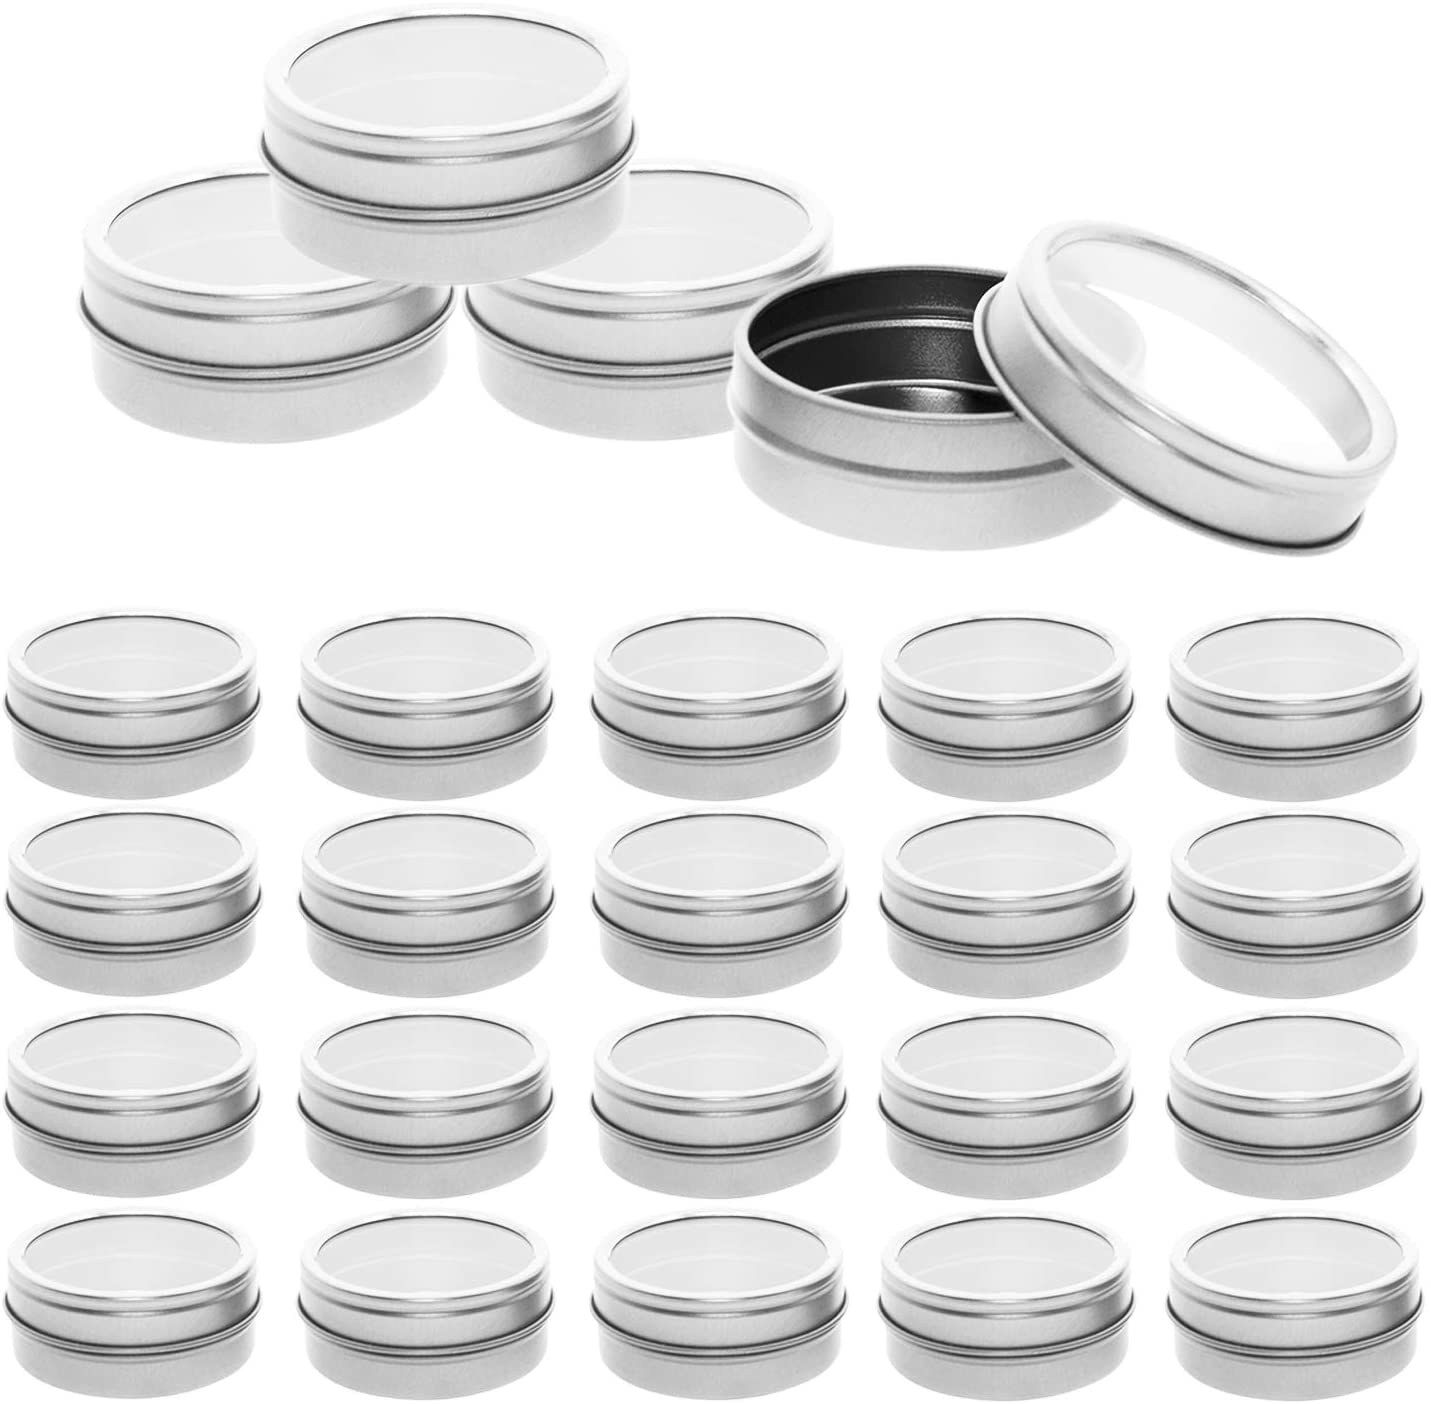 Mimi Pack 24 Pack Tins 1 oz Shallow Round Tins with Clear Window Lids Empty Tin Containers Cosmetics Tins Party Favors Tins and Food Storage Containers (Silver)